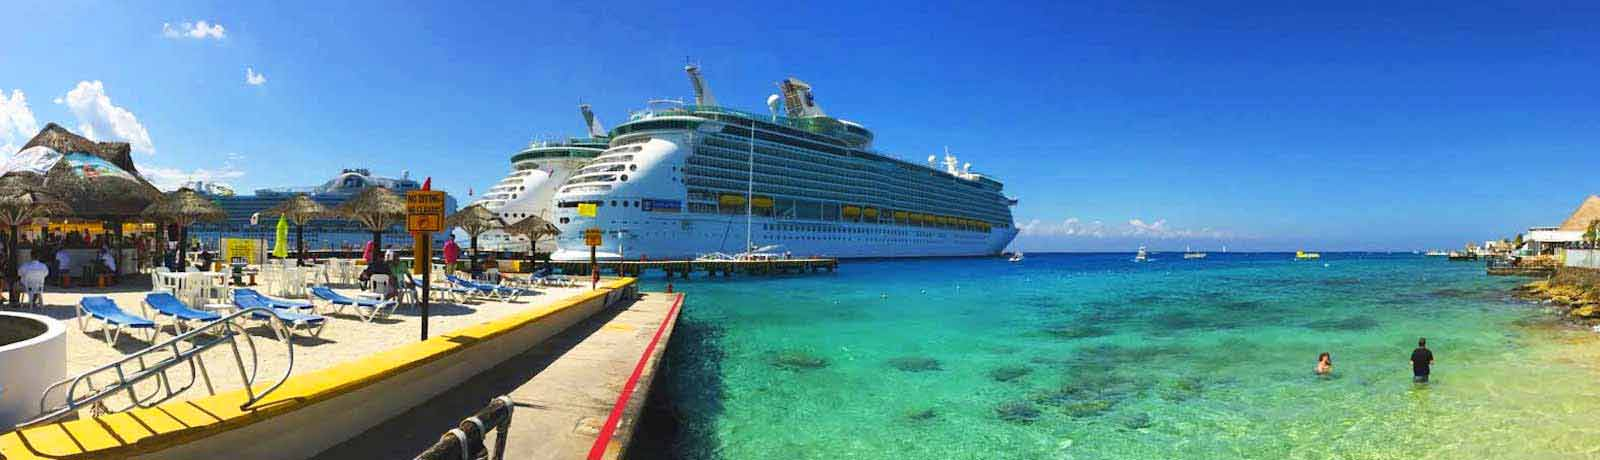 Overview | Cozumel (Mexico) Cruise Port Guide | IQCruising